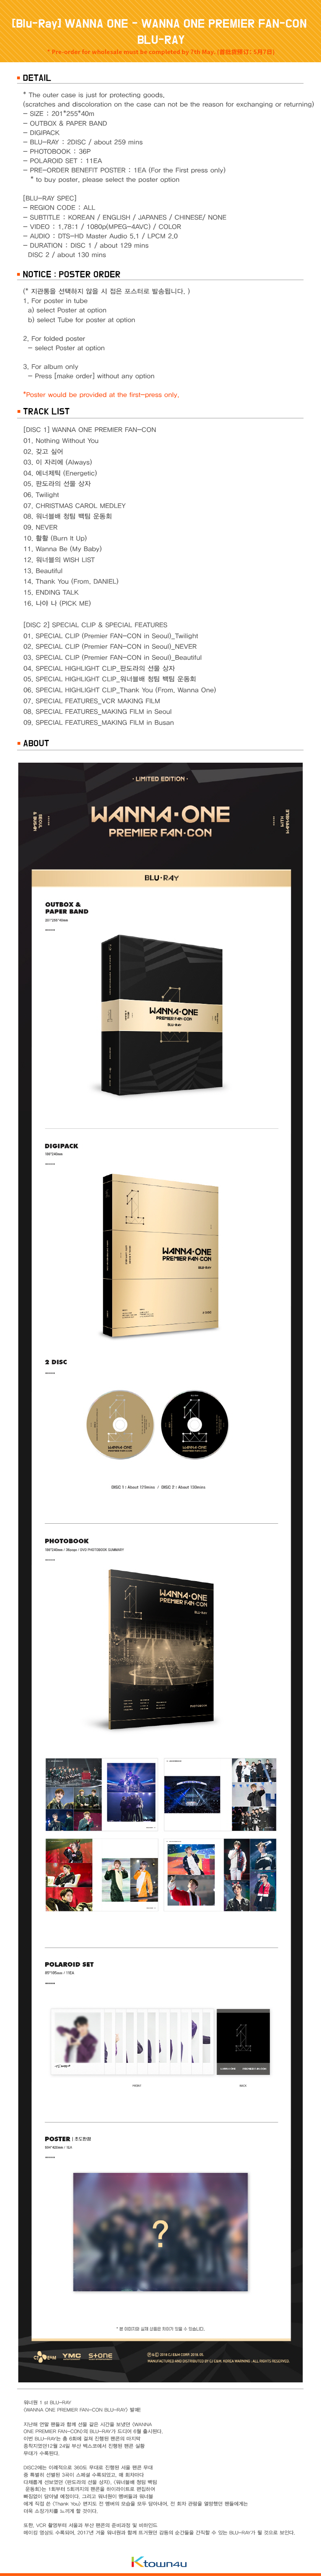 [Blu-Ray] WANNA ONE - WANNA ONE PREMIER FAN-CON BLU-RAY